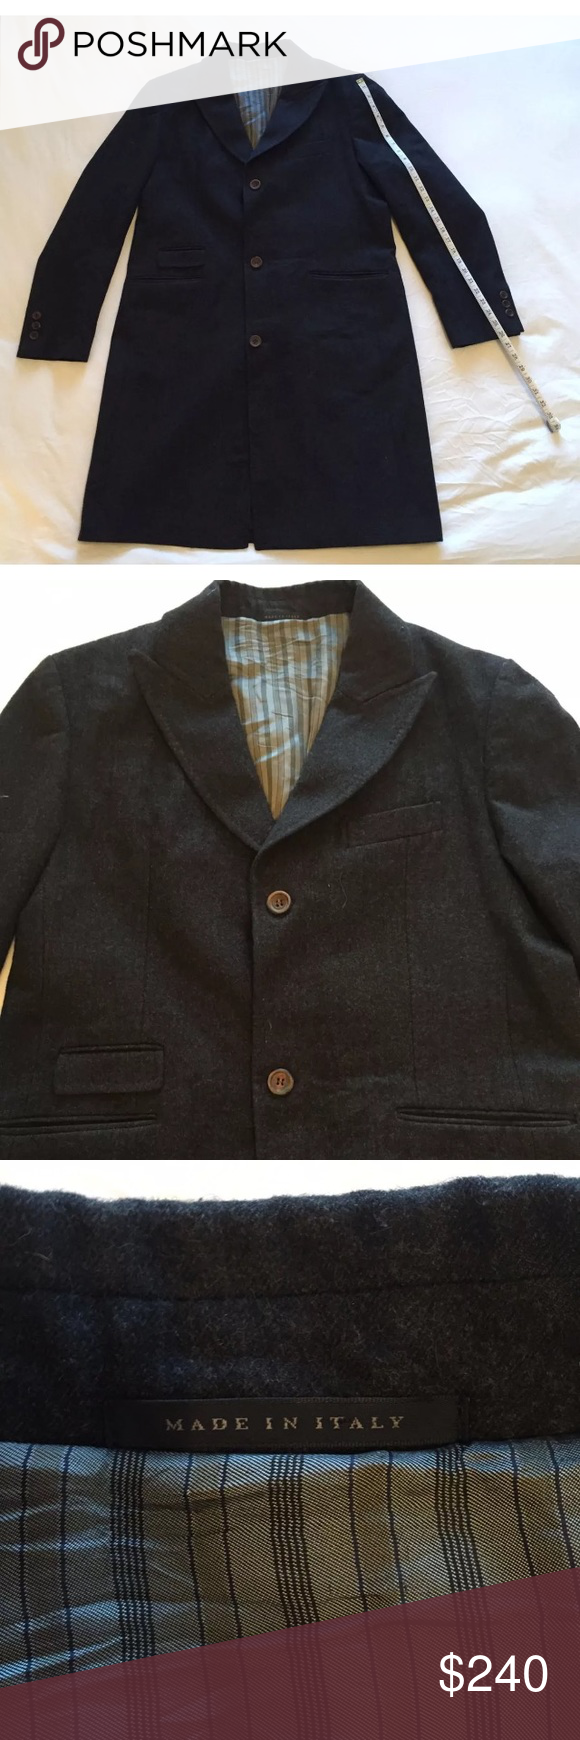 Men's Pea Coat 100 Virgin Wool Peacoat men, Clothes